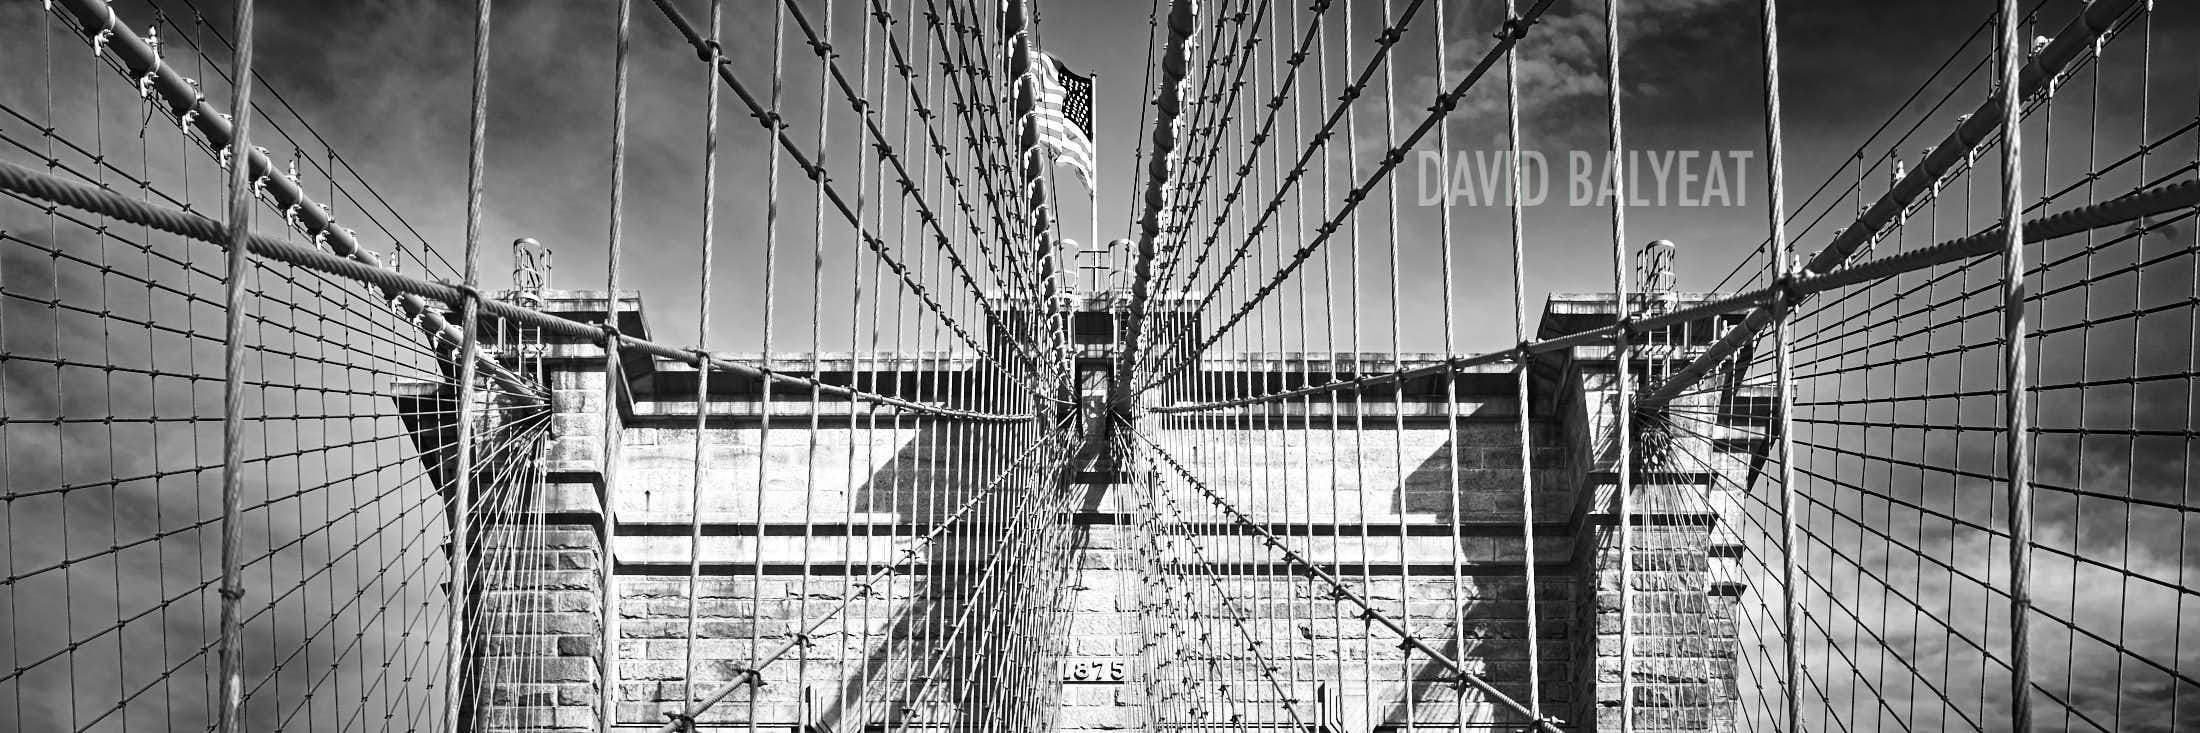 Brooklyn Bridge panoramic black and white New York City circa 1875 high-definition HD professional landscape photography